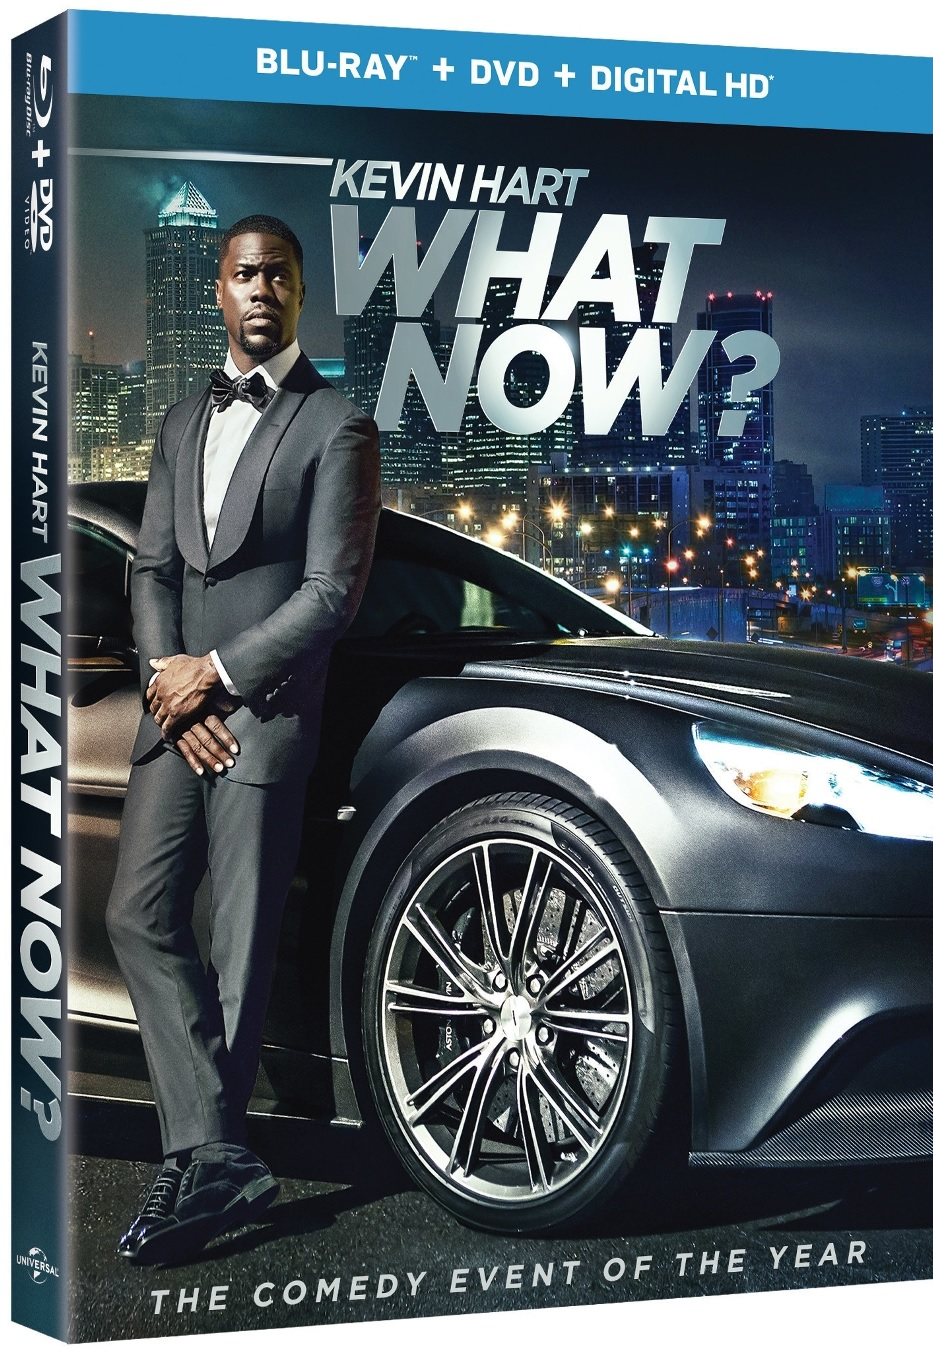 Kevin Hart What Now? Blu-ray Review